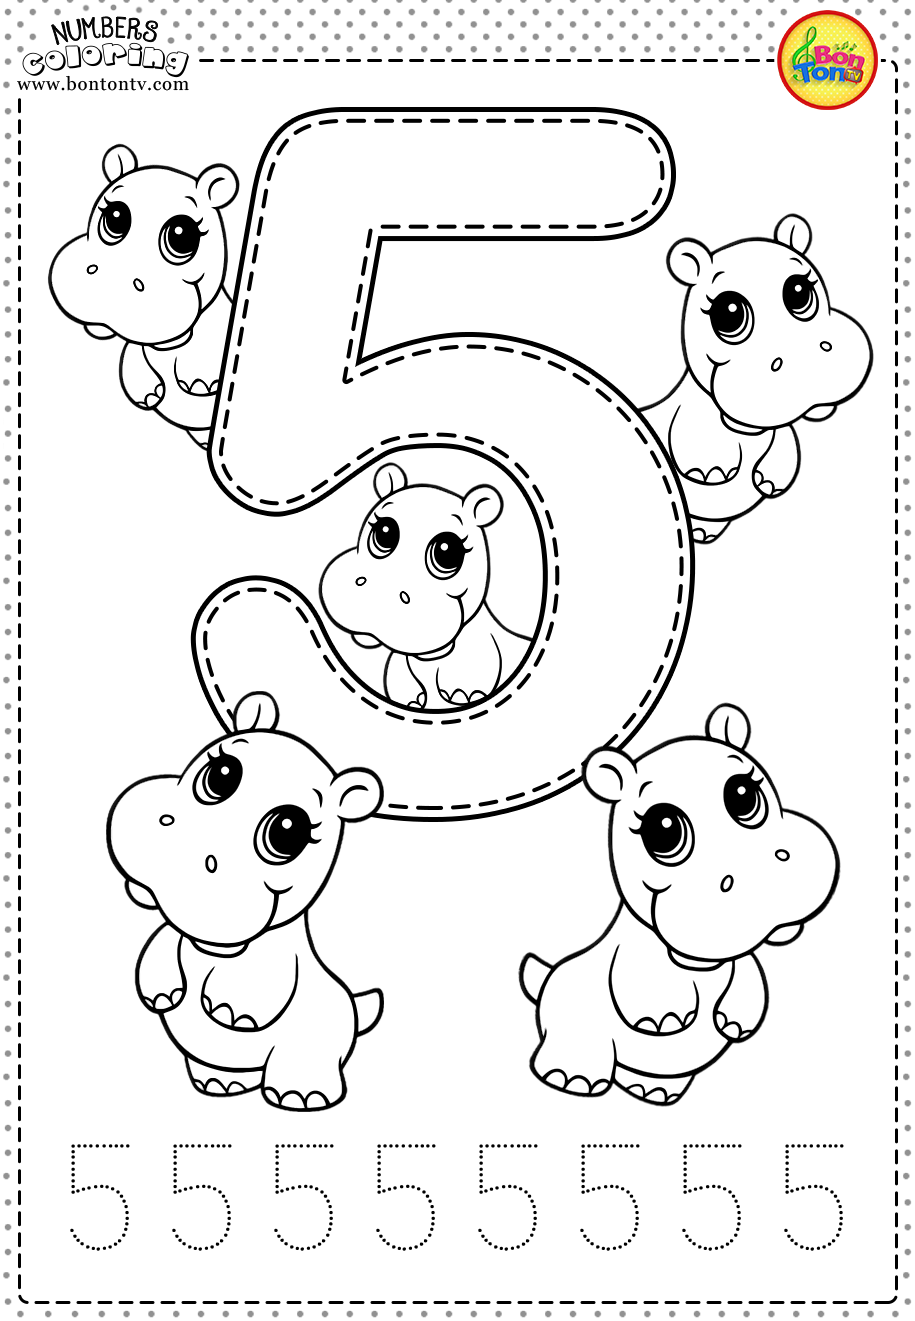 coloring pages 1 5 clipart numbers 1 5 clipground coloring pages 1 5